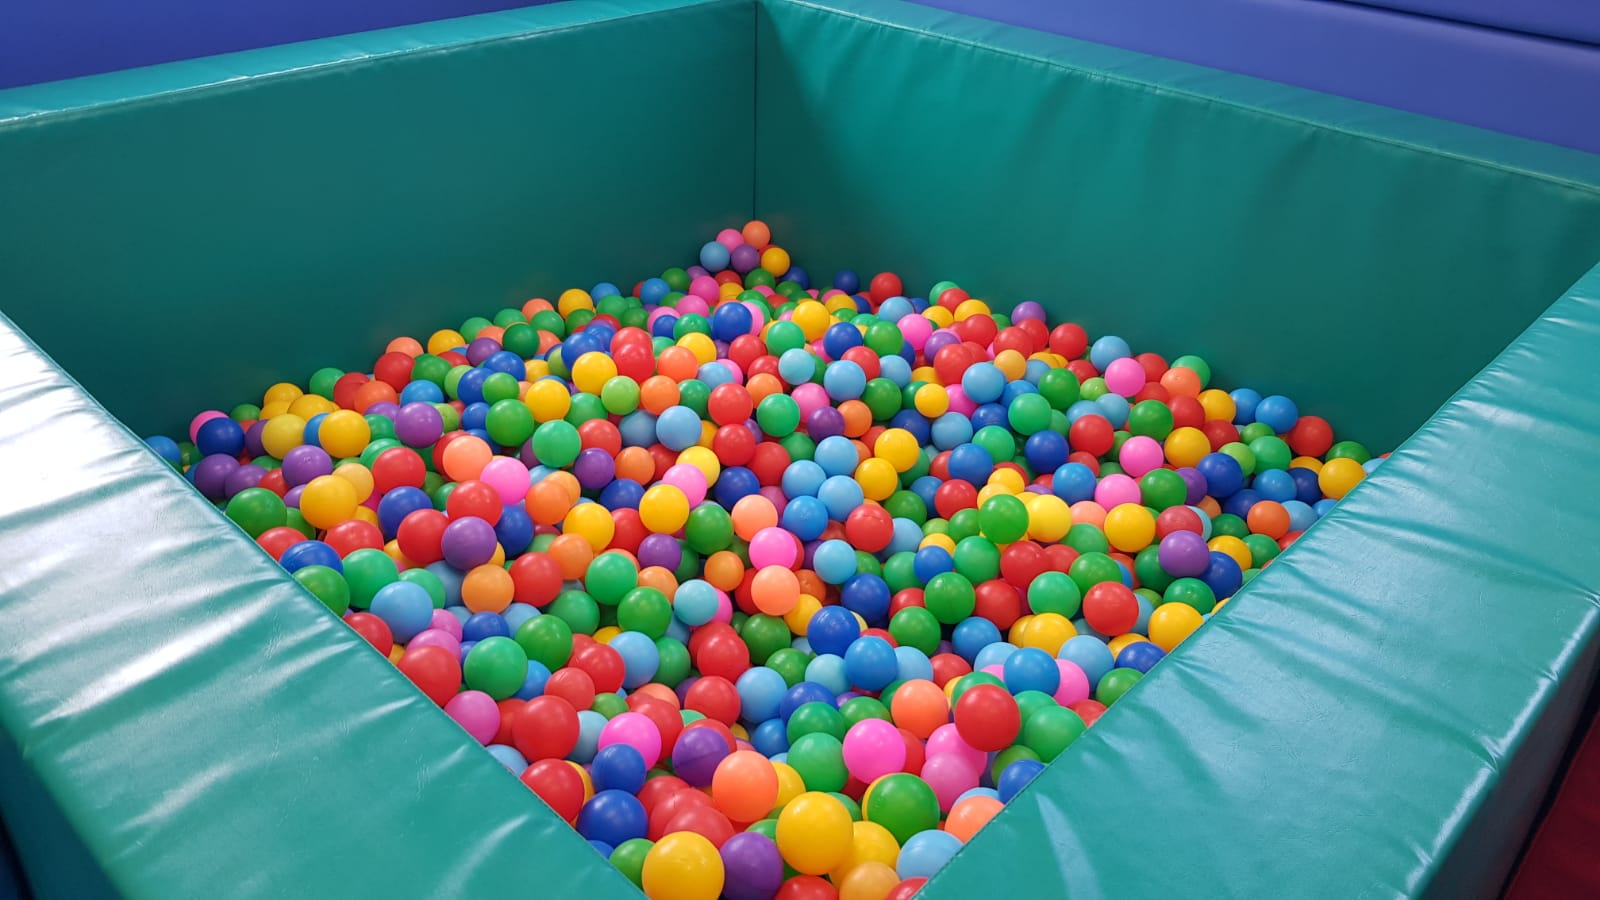 Ball pool in soft play room